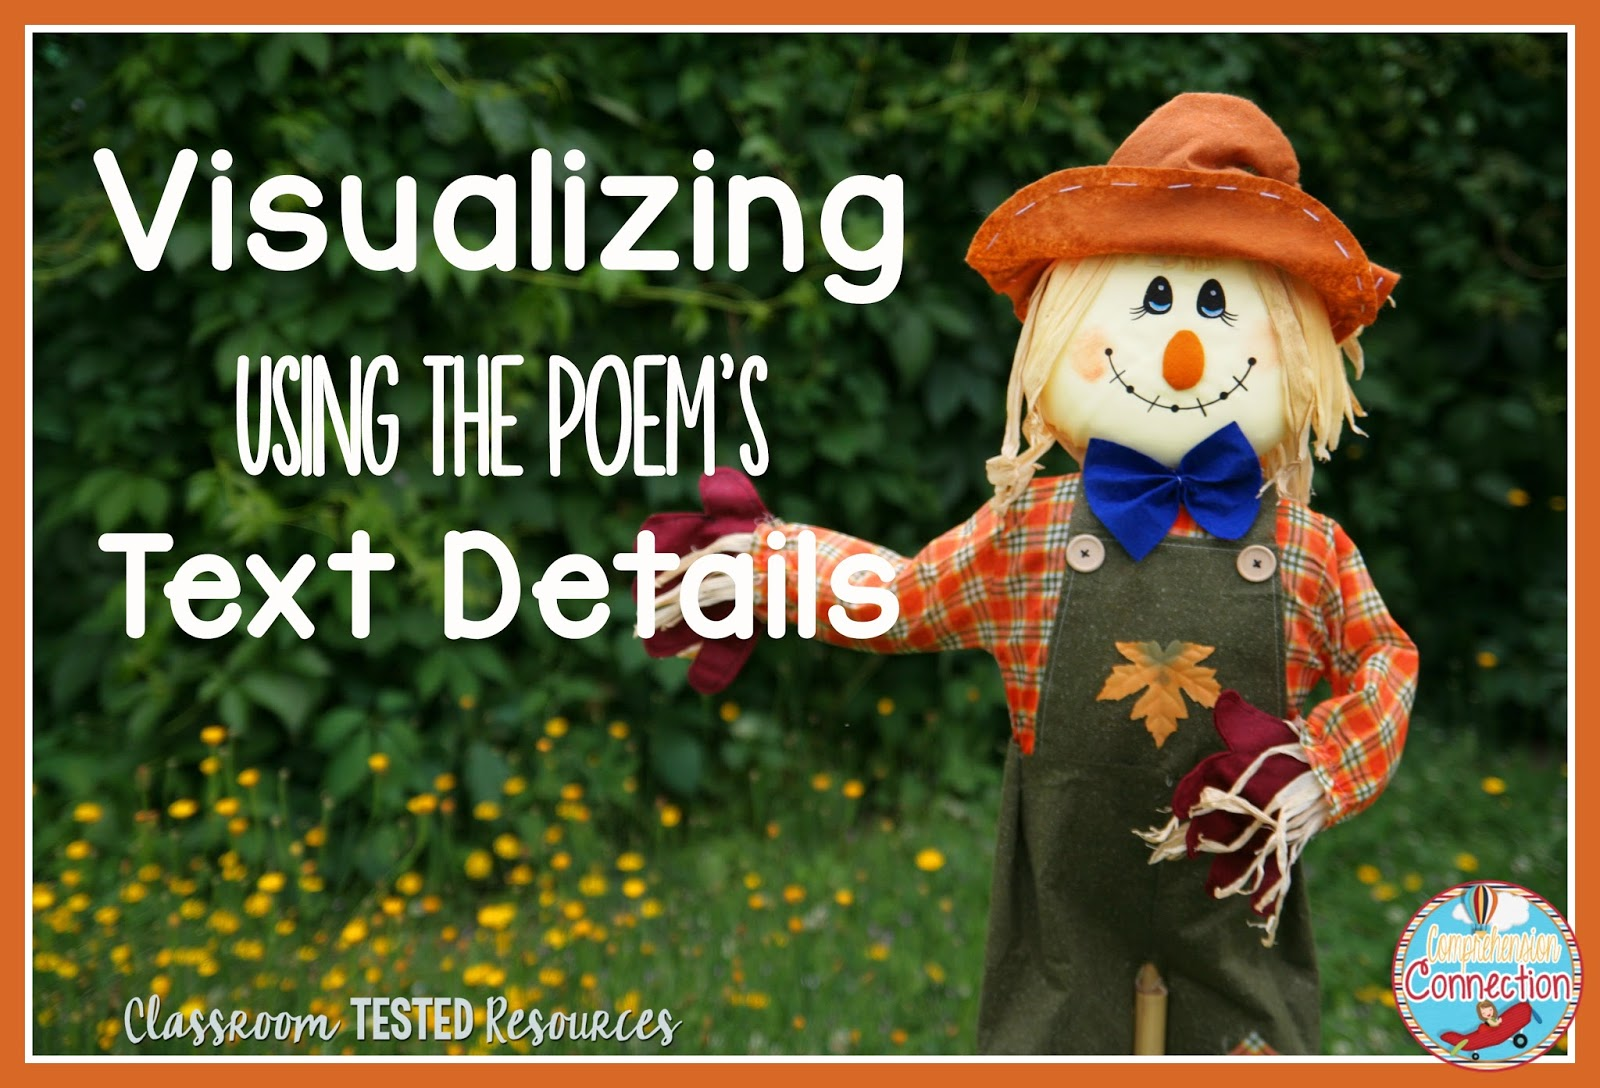 One of the most important skills readers need is visualizing. If kids struggle with visualizing, it makes it very hard to comprehend. There are ways to work on it though. Check out this post for using visualizing with poetry.